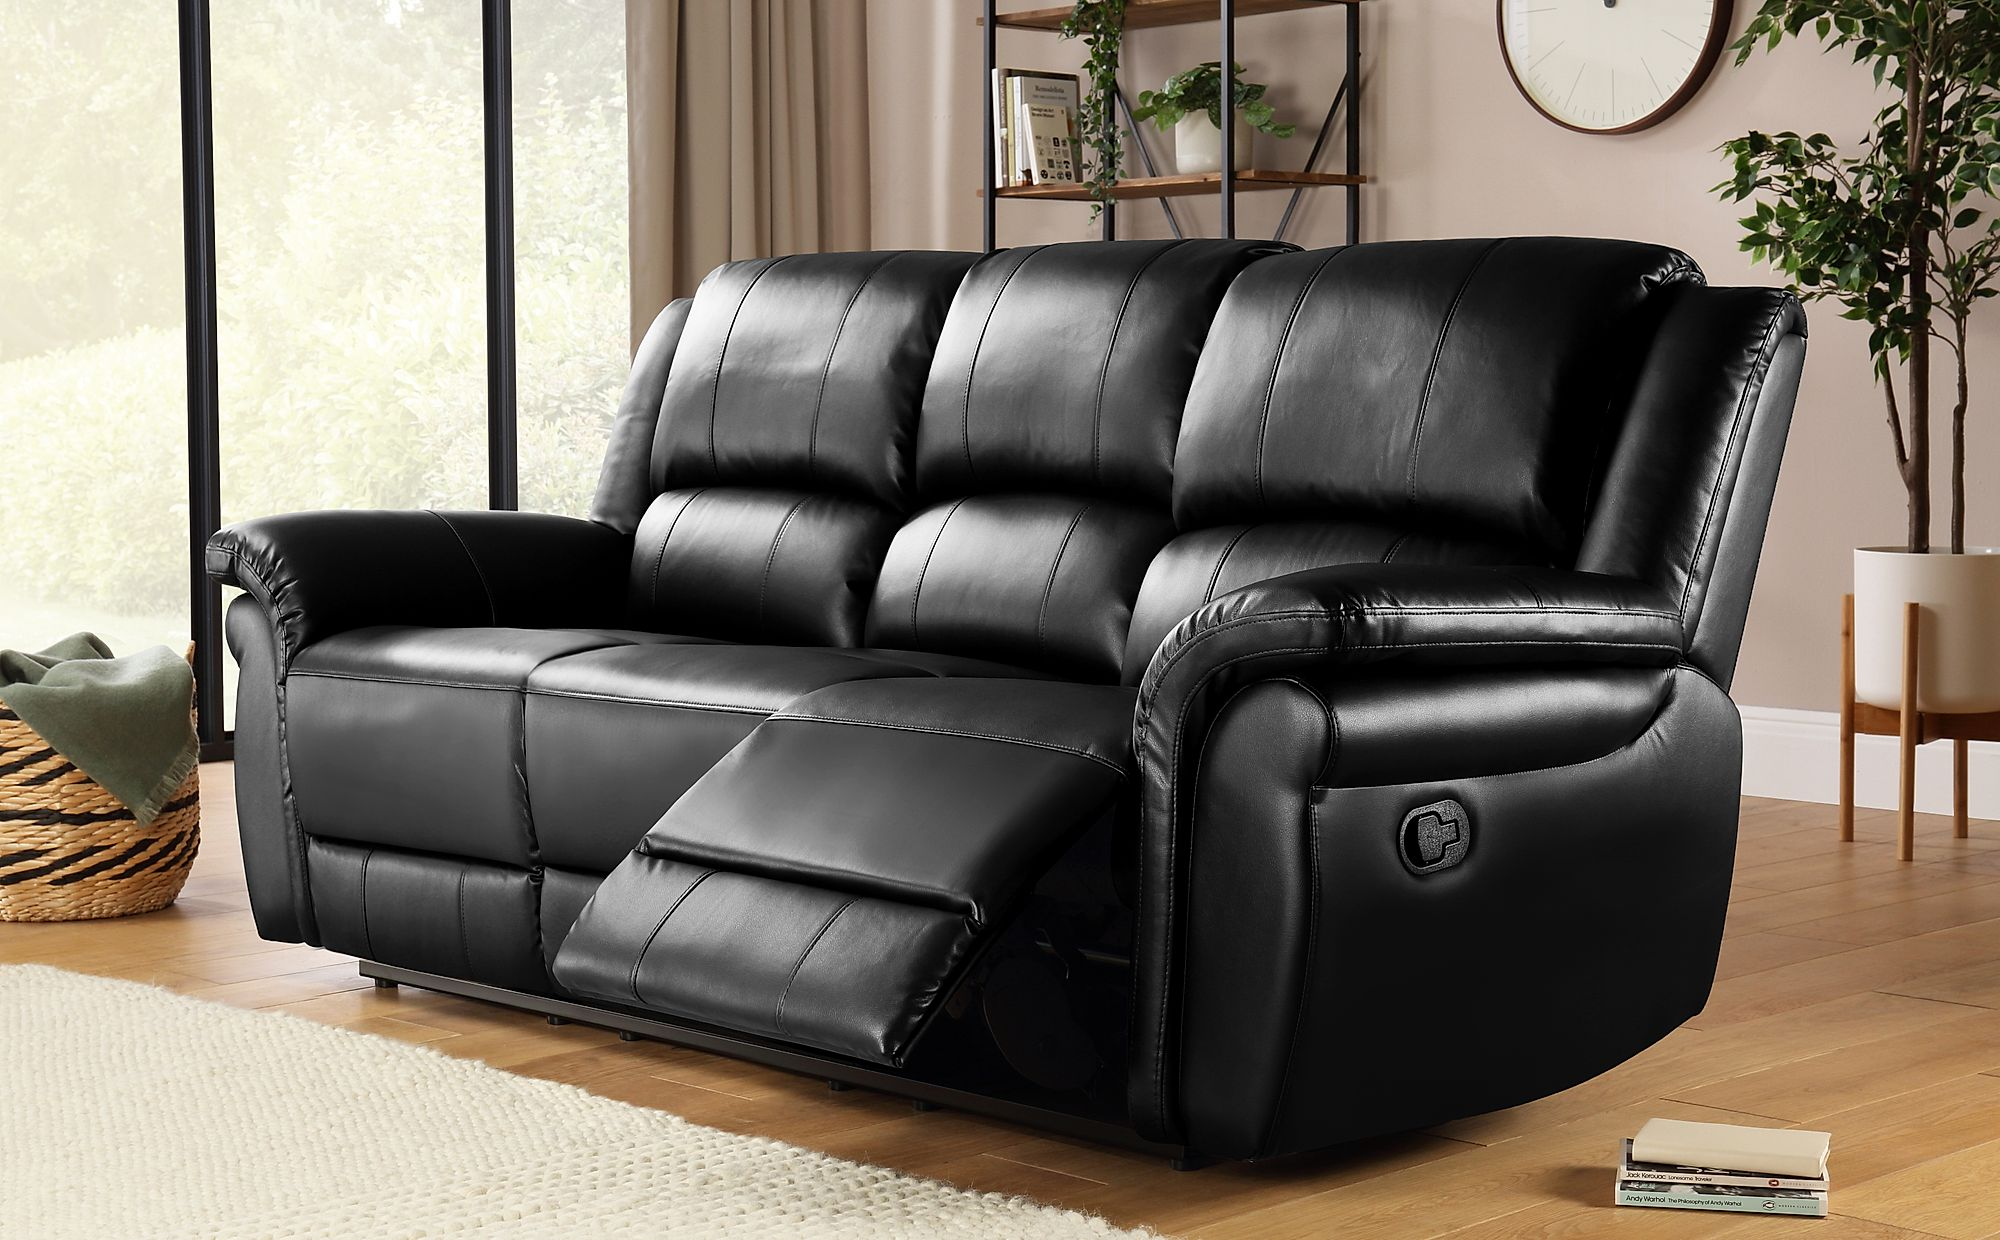 Lombard Black Leather 3 Seater Recliner Sofa